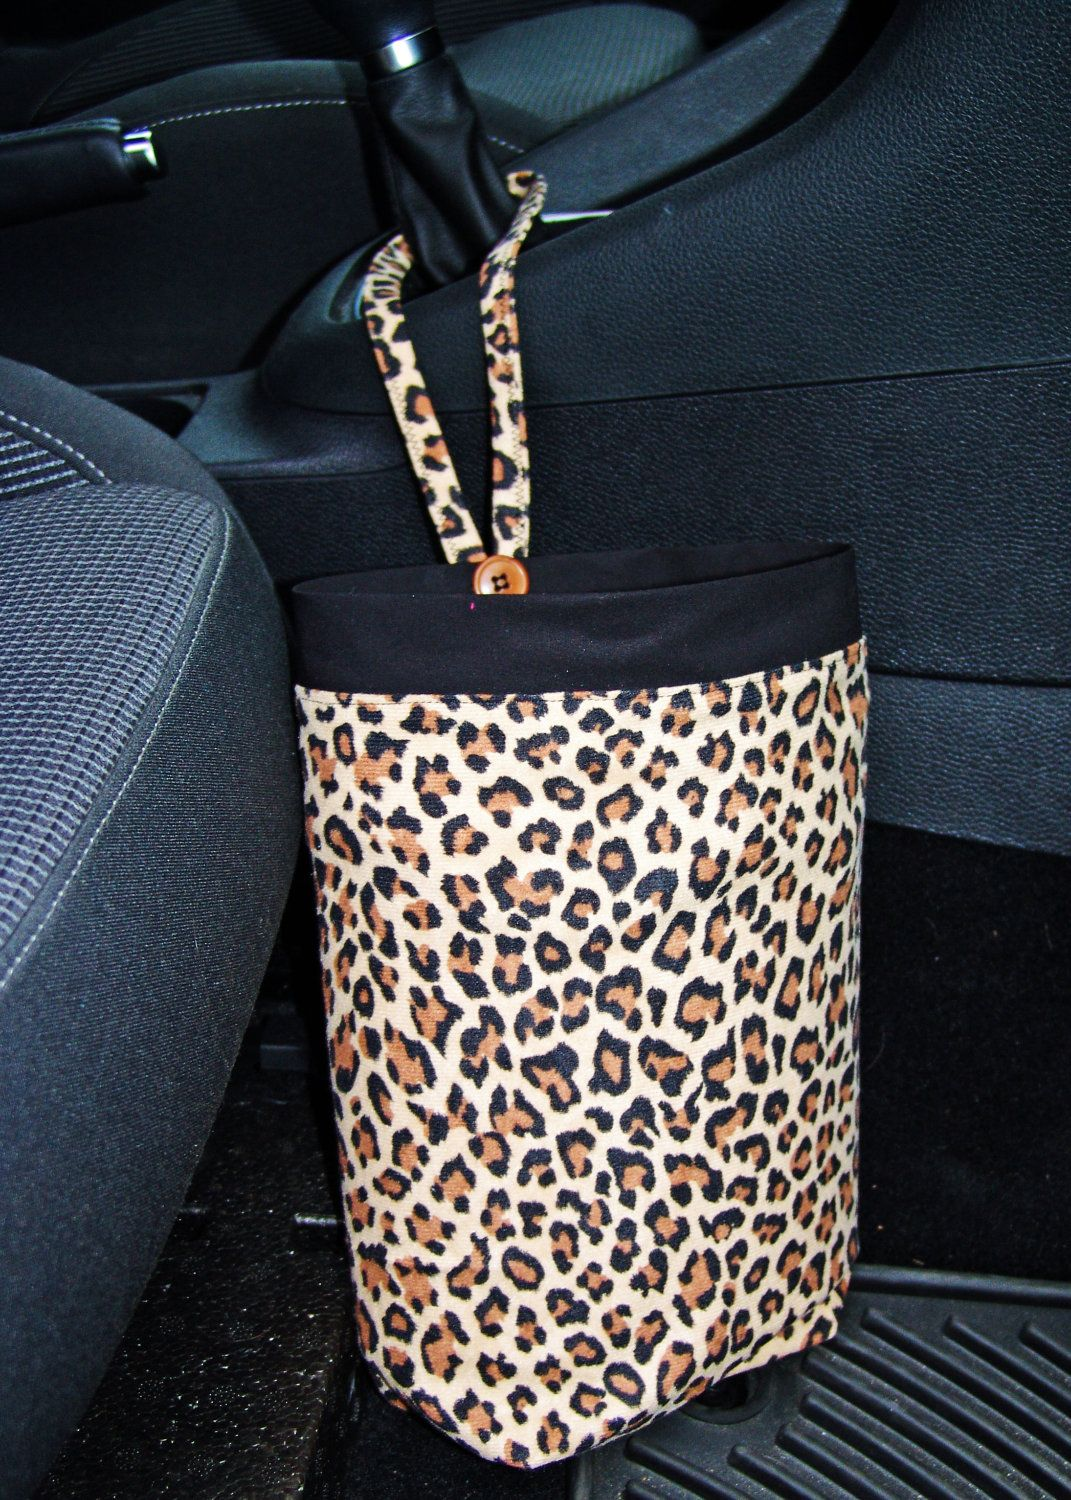 Car Trash Bag Leopard Print Men Women Car Litter Bag